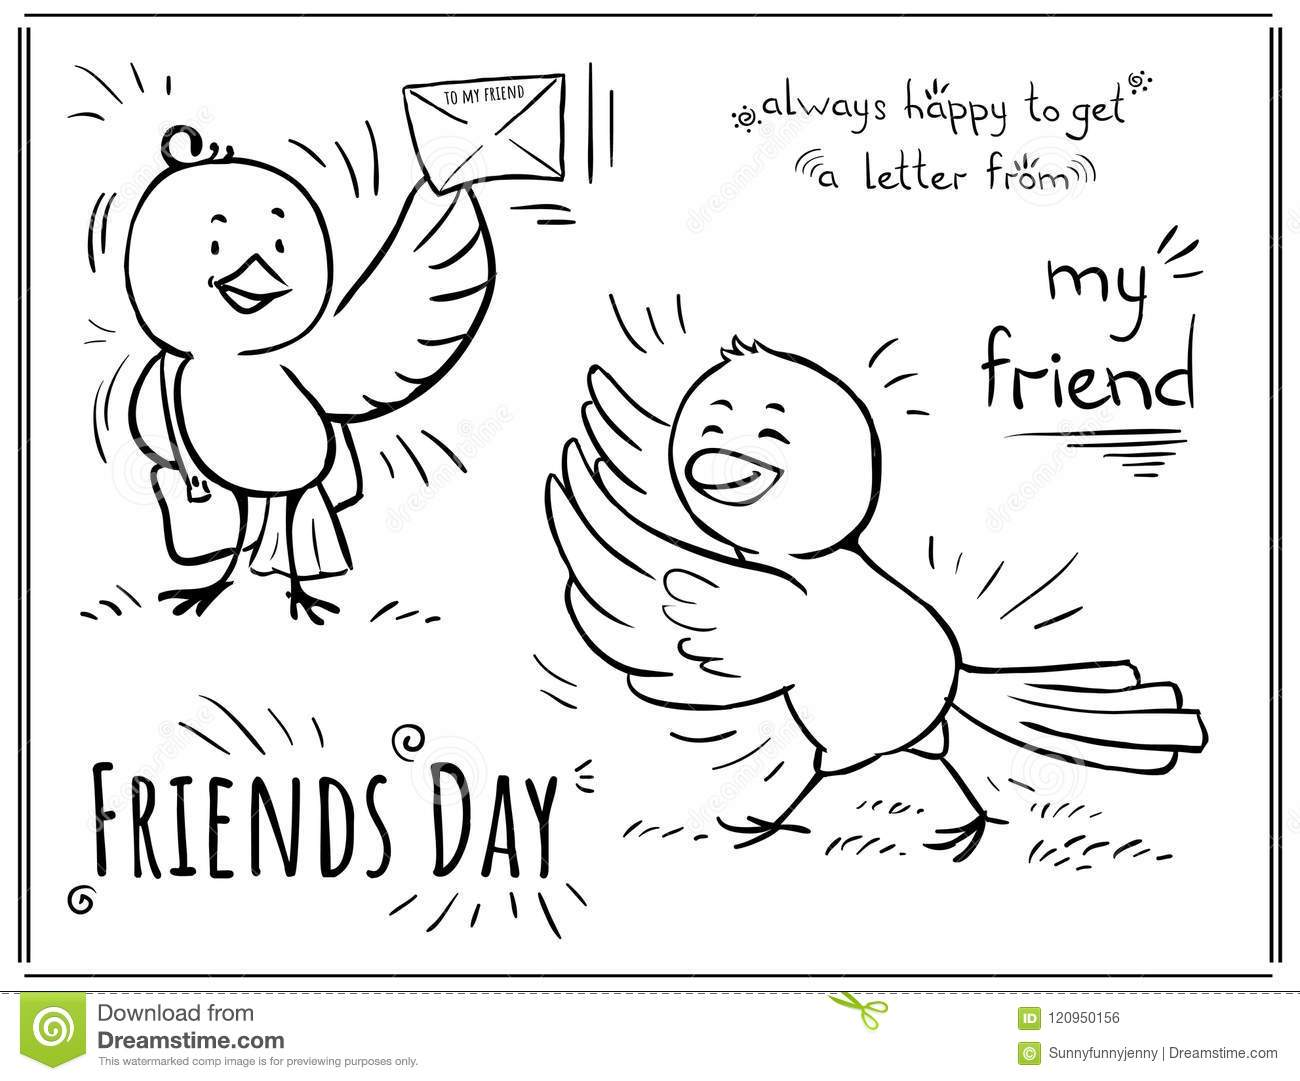 Greeting Card Day Of Friendship - Happy To Get Letter Fro